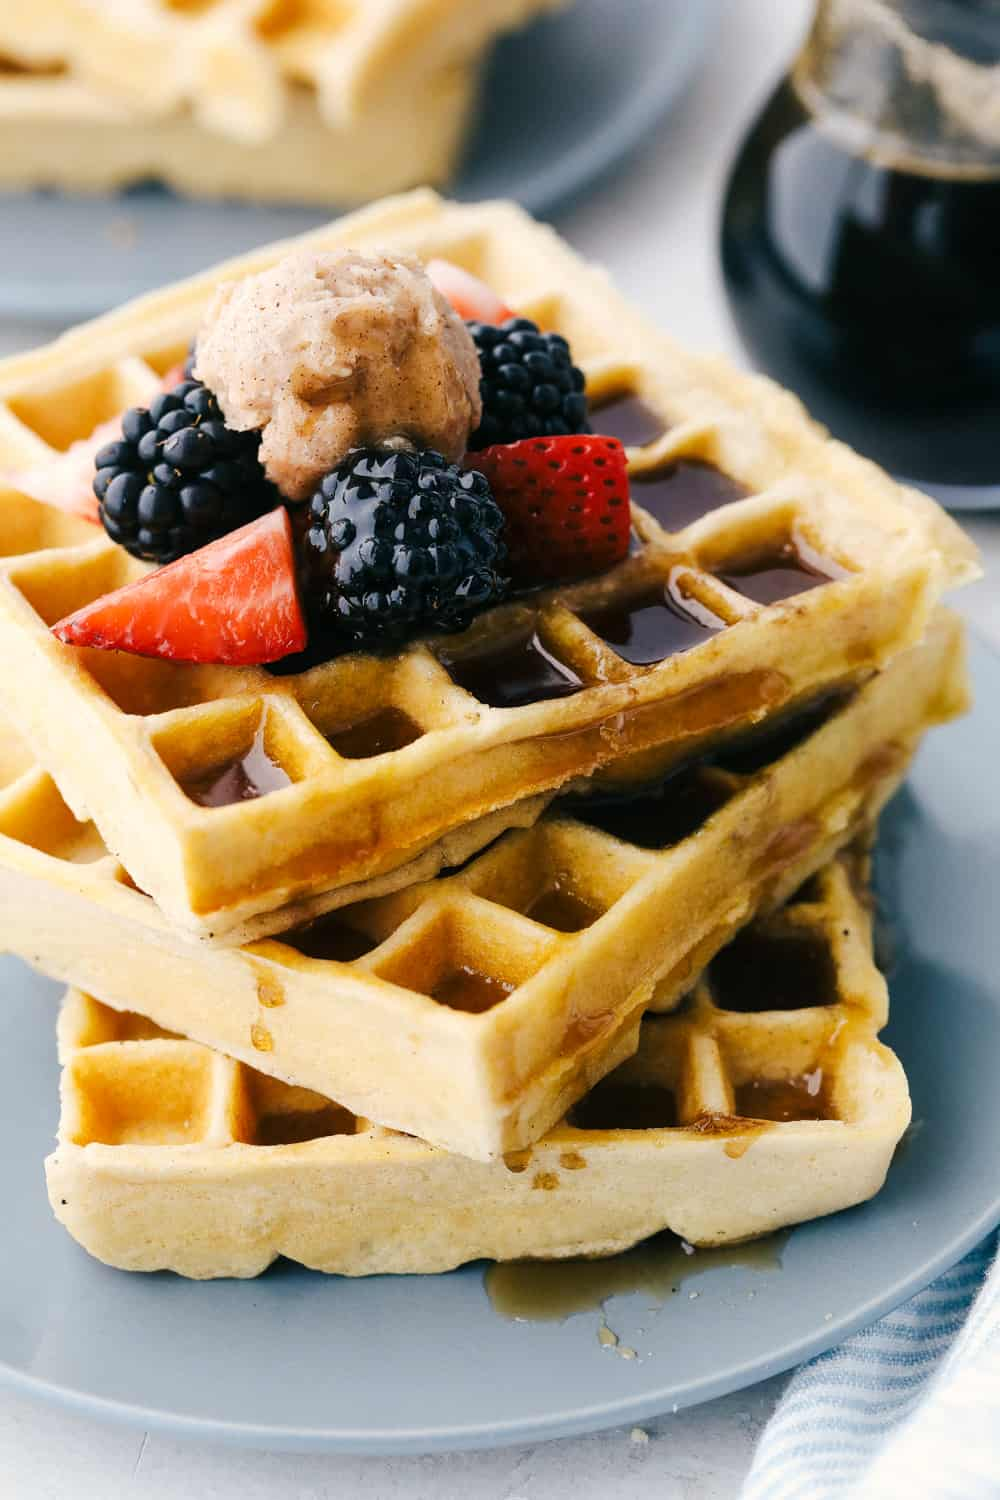 A Stack of fluffy waffles with fruit and syrup on a plate.